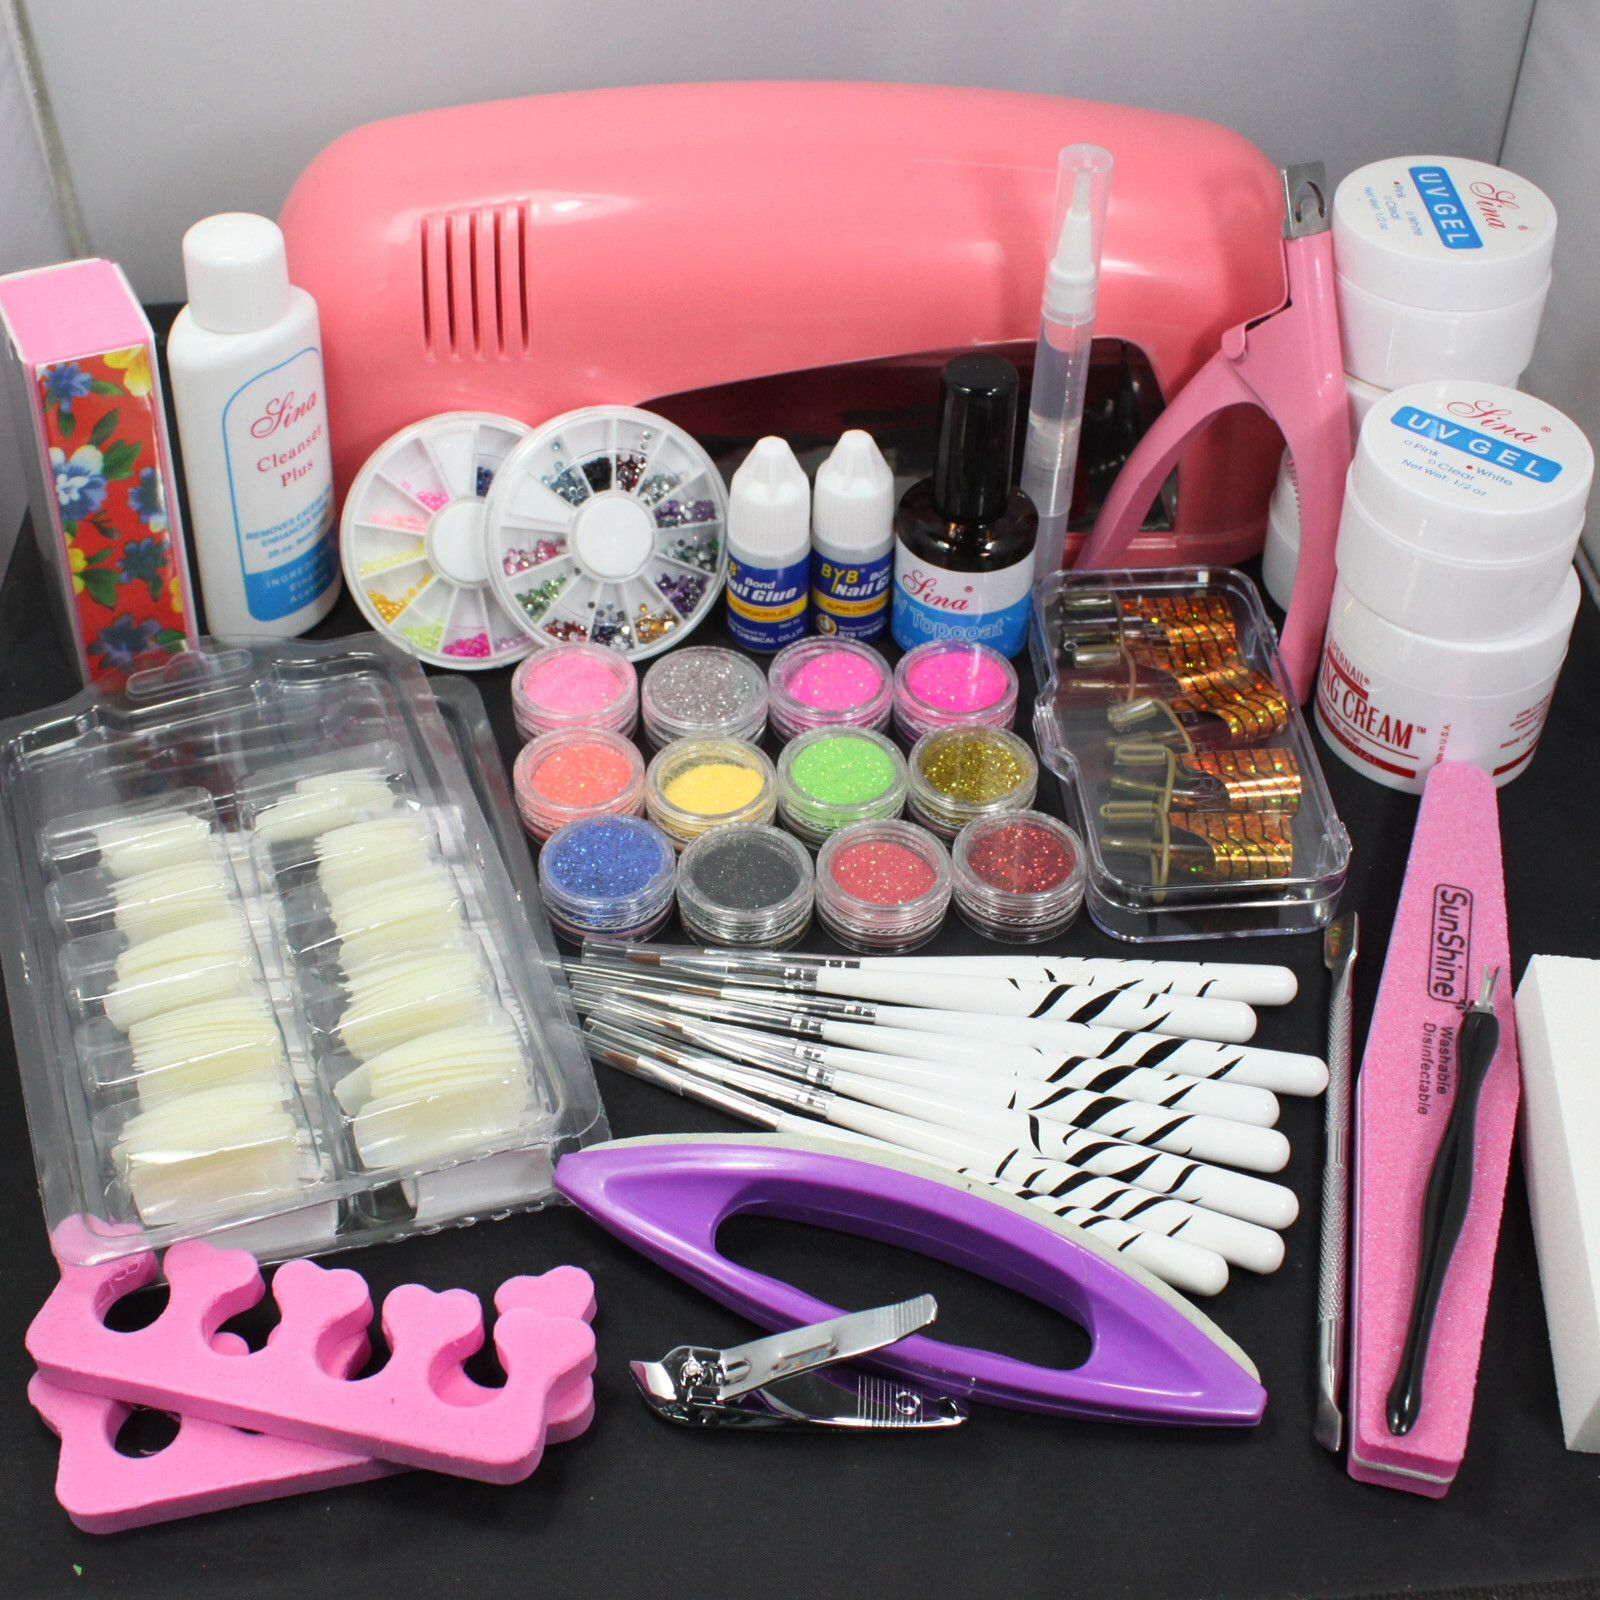 Pro Nail Art Kit Nails Pinterest Nail Art Kits Sparkle Nails